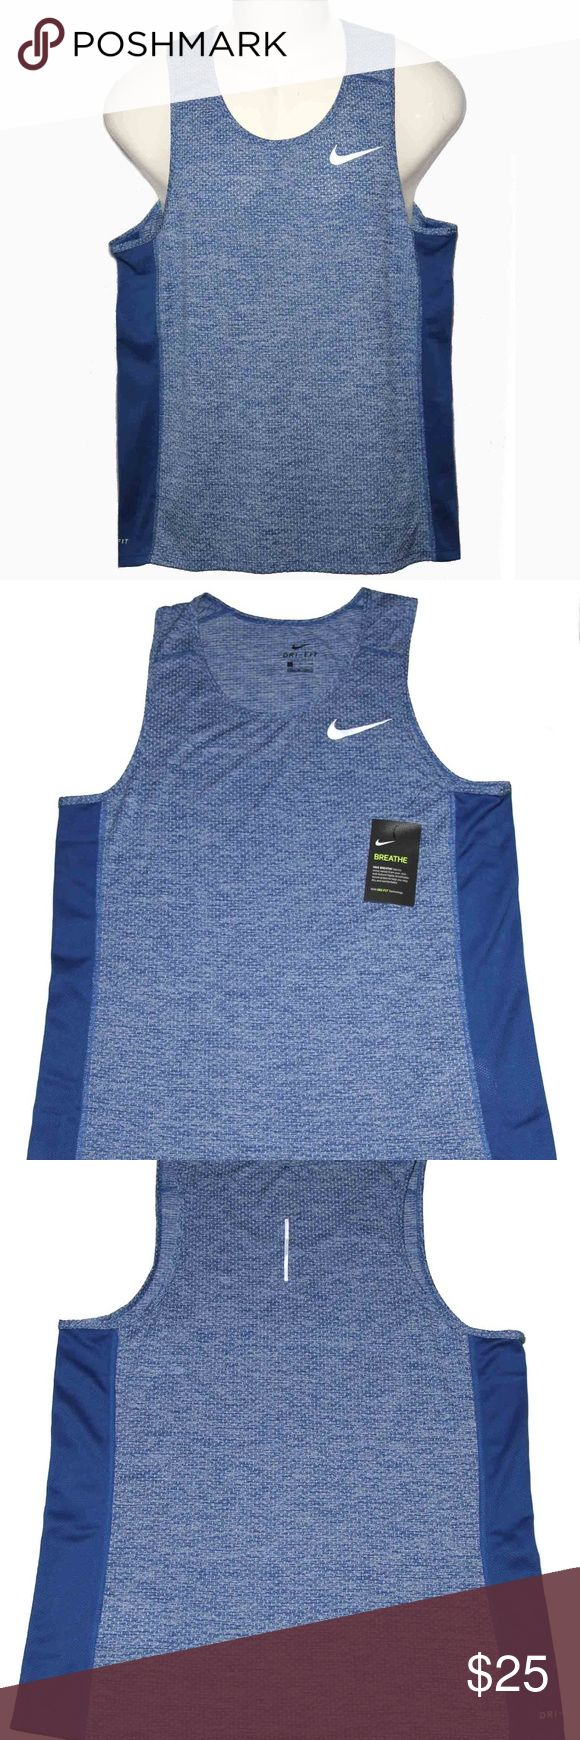 "Mens Nike Tank Top Shirt Blue Gray Size M Men's new, with tags, Nike ""Breathe"" Dri-Fit tank top Size Medium Blue and gray 100% polyester, Dri-Fit fabric (moisture wicking properties) Screen printed Nike Swoosh emblem on the front Nike Shirts Tank Tops"